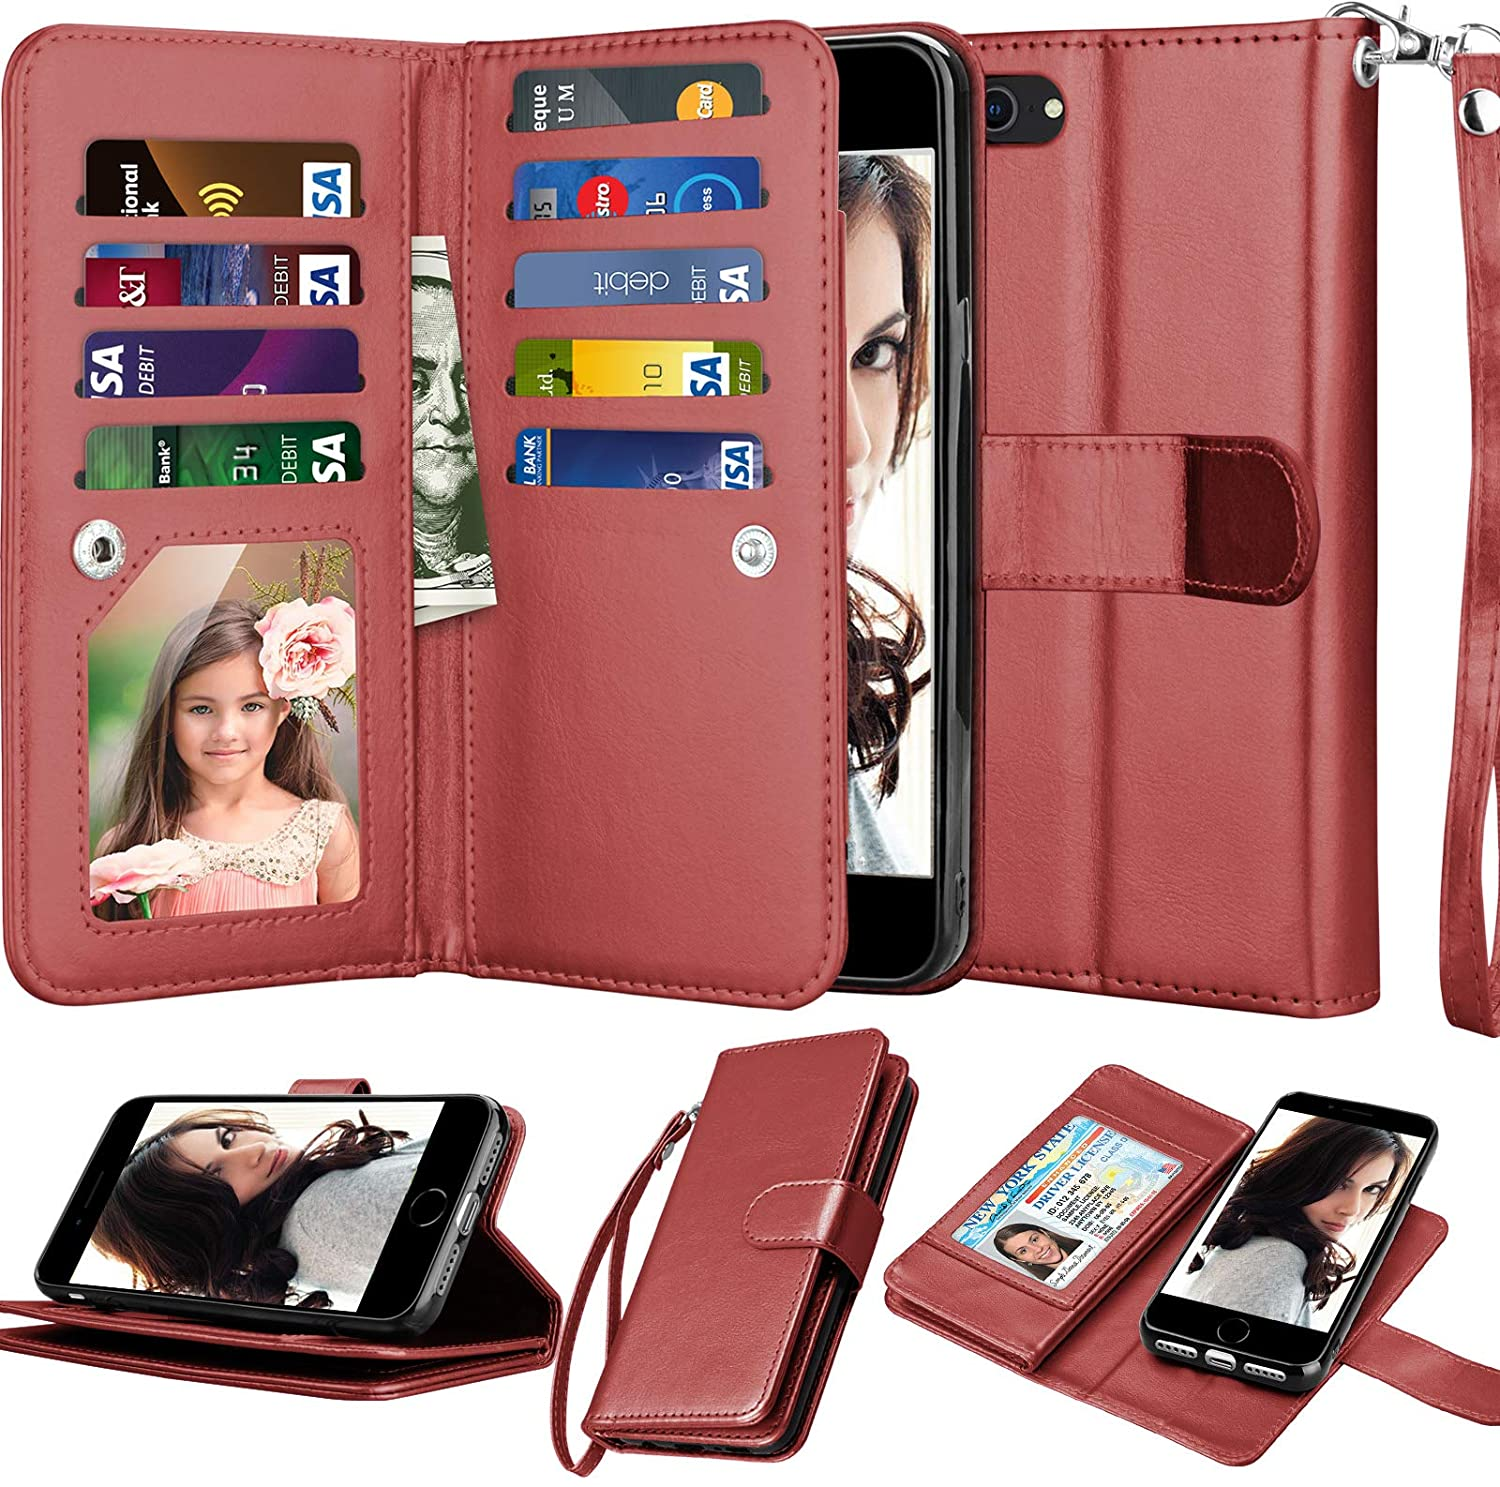 Njjex Wallet Case For iPhone SE 2020/SE2, for iPhone 8/iPhone 7 Case, [9 Card Slots] PU Leather Credit Holder Folio Flip [Detachable] Kickstand Lanyard Magnetic Phone Cover For iPhone SE 2nd -Wine Red